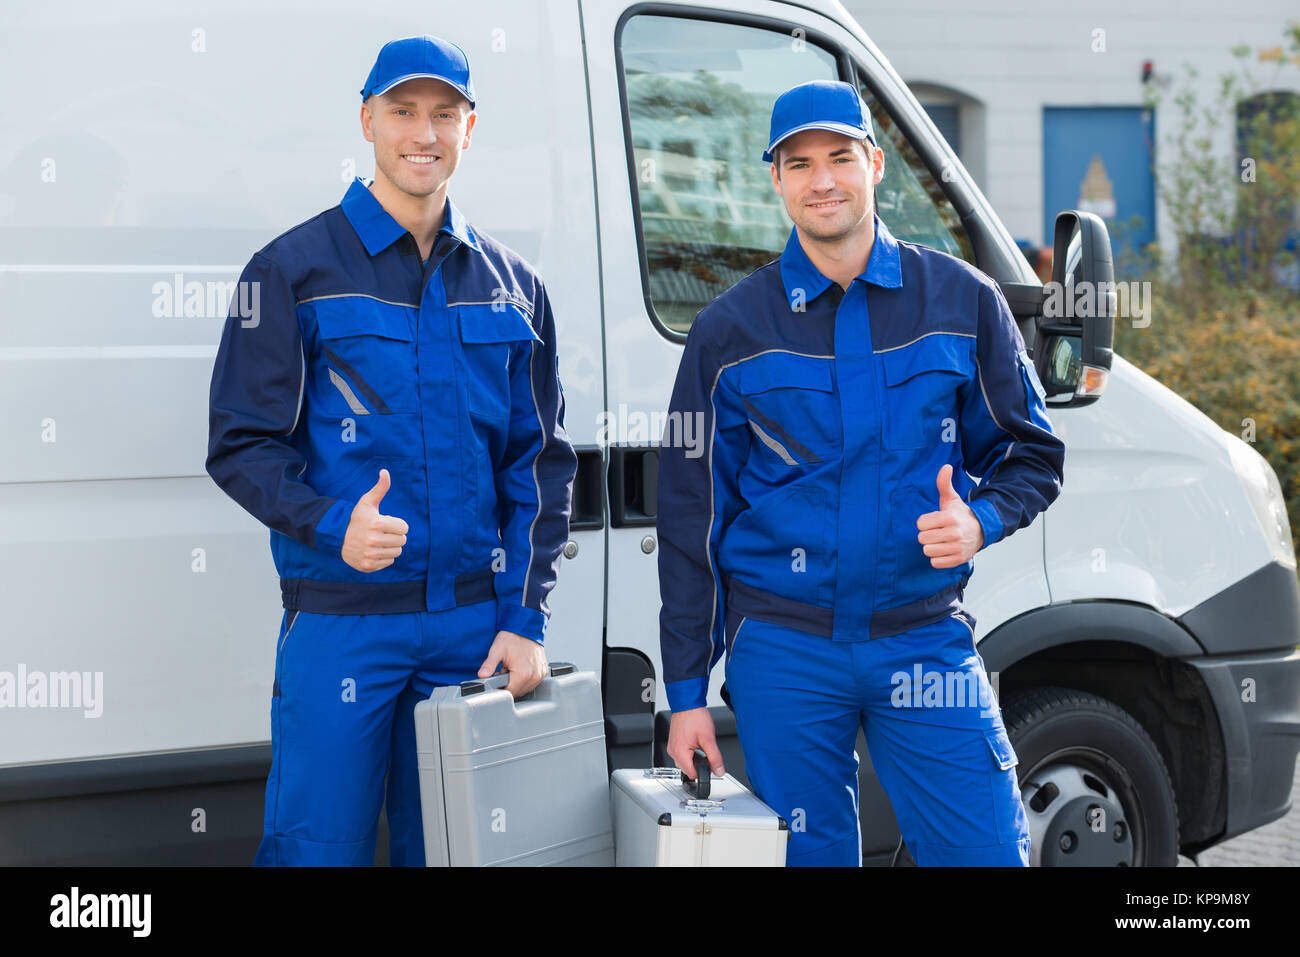 Happy Technicians Showing Thumbsup Against Truck - Stock Image